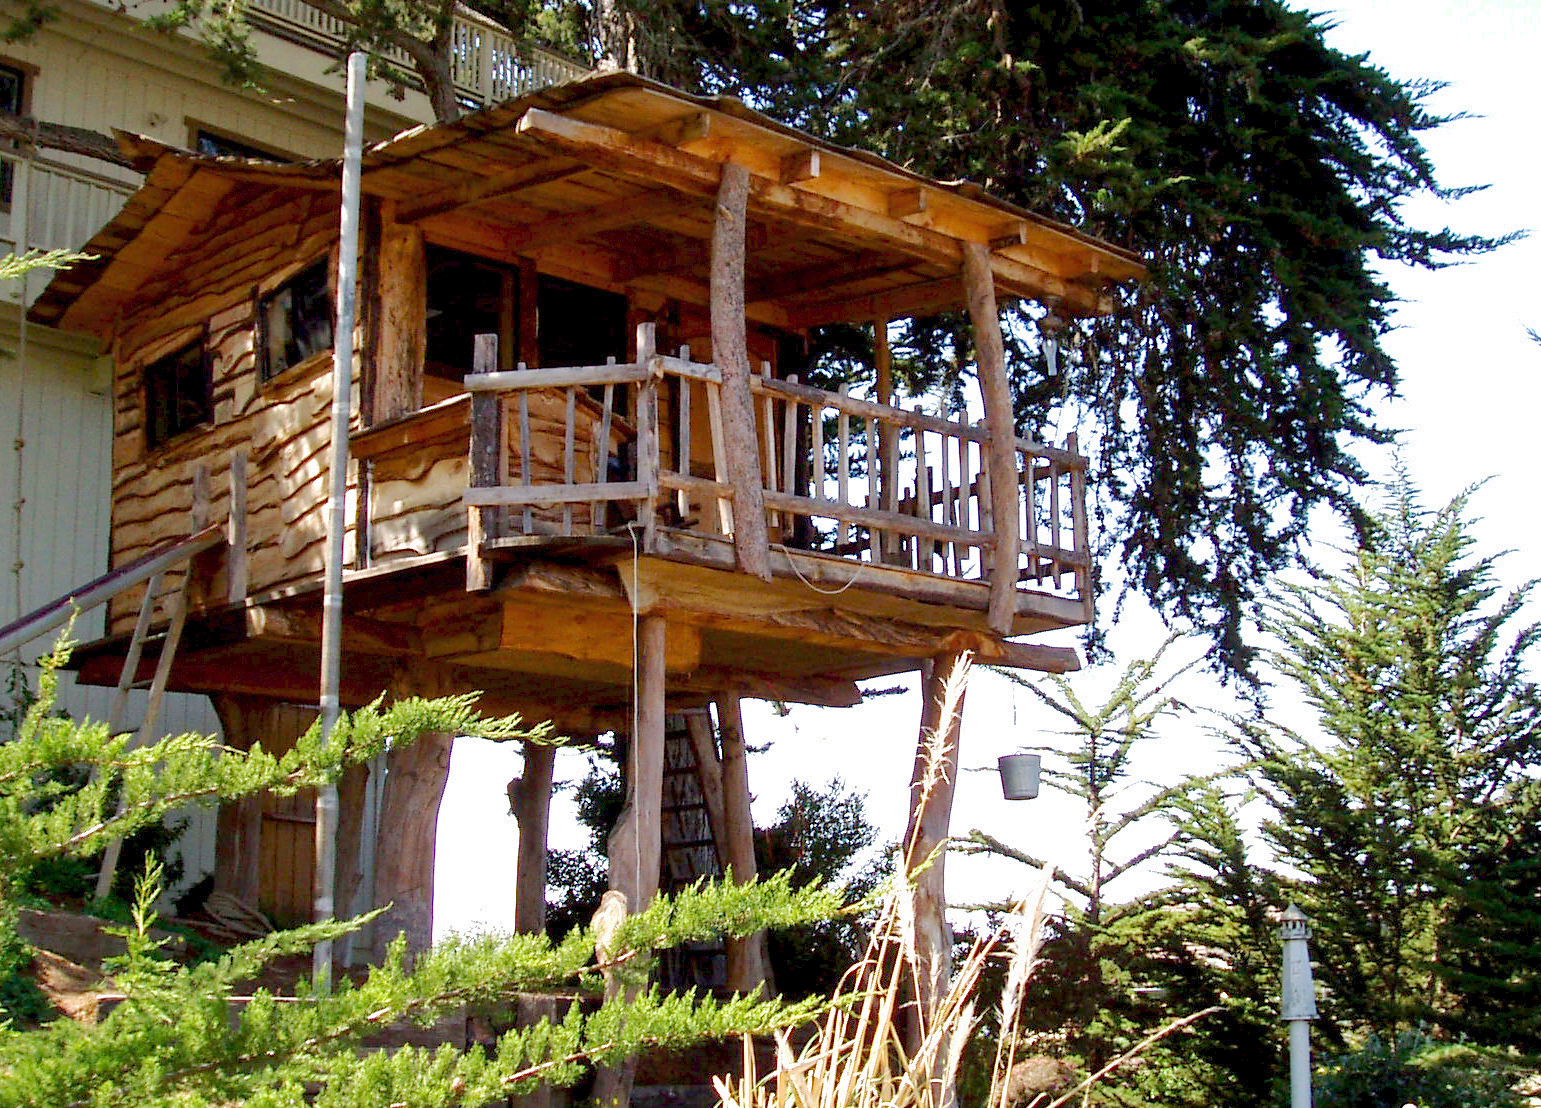 File:Tree house.jpg - Wikimedia Commons